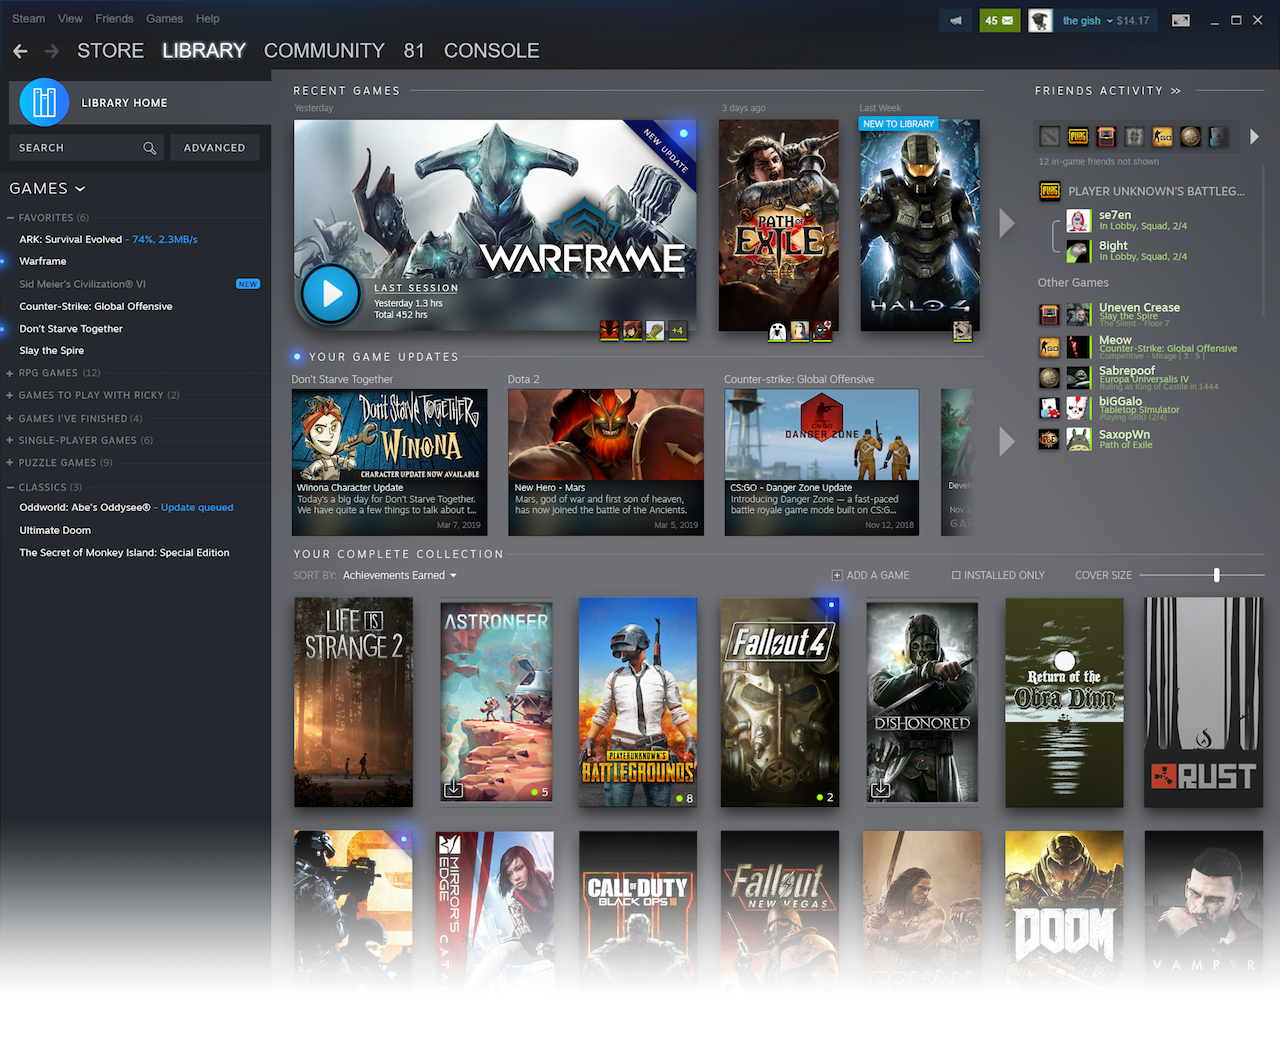 The new Steam UI redesign, in all its glory.